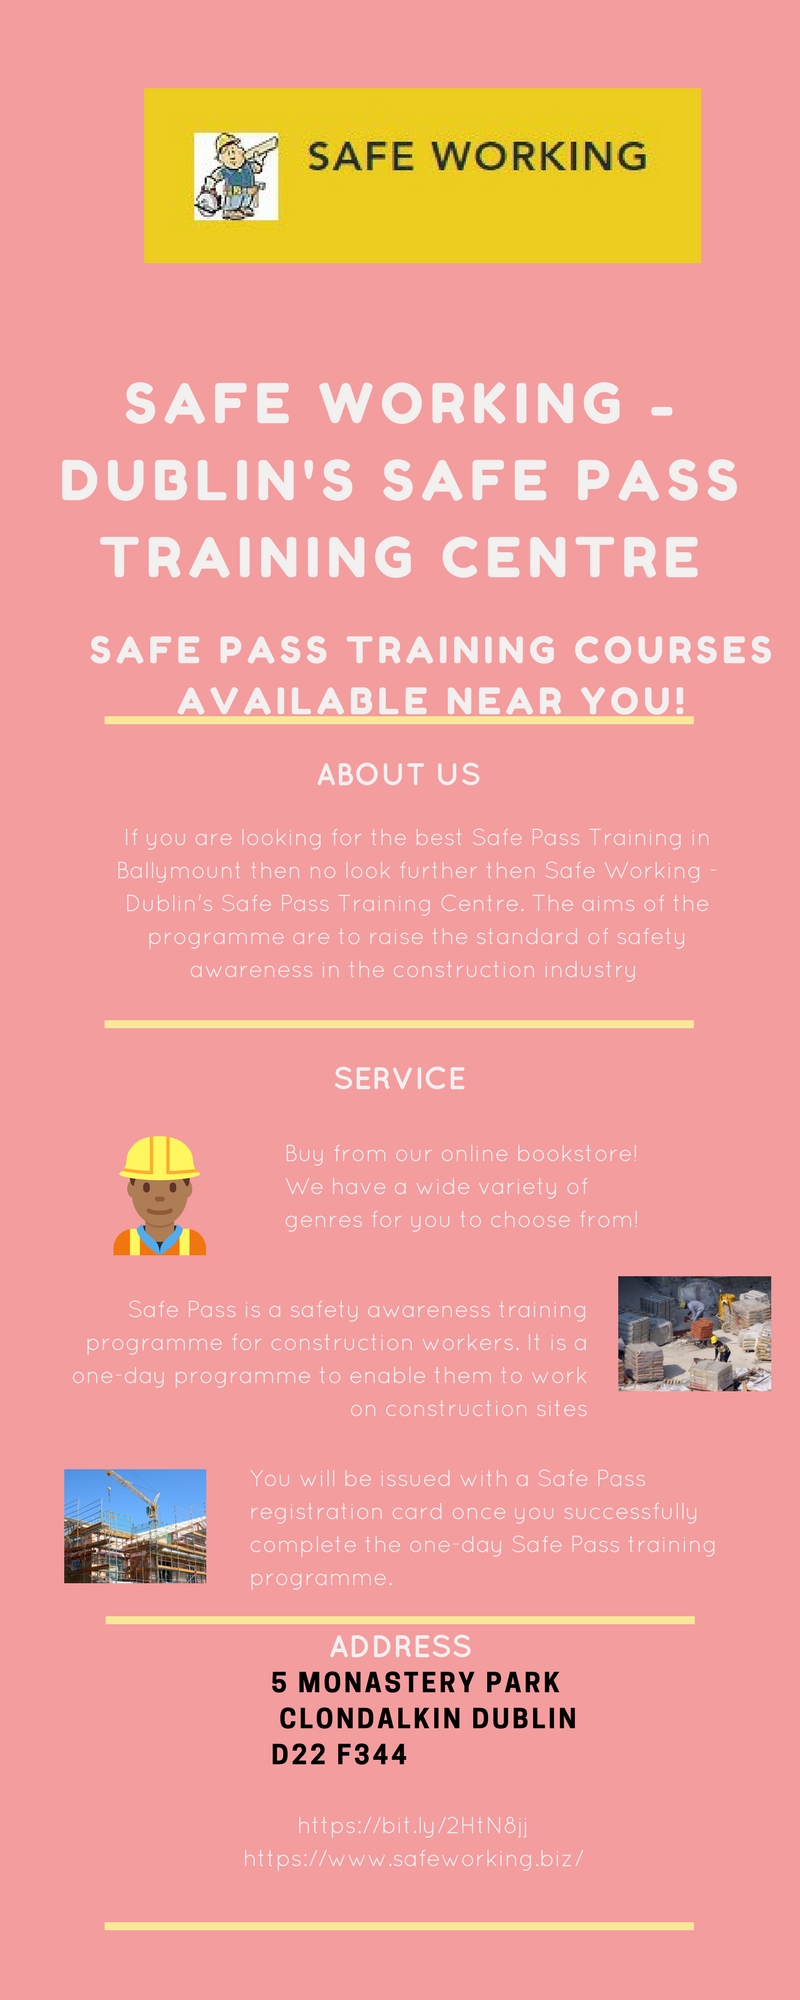 Looking for the Safety Awareness Training and safe pass